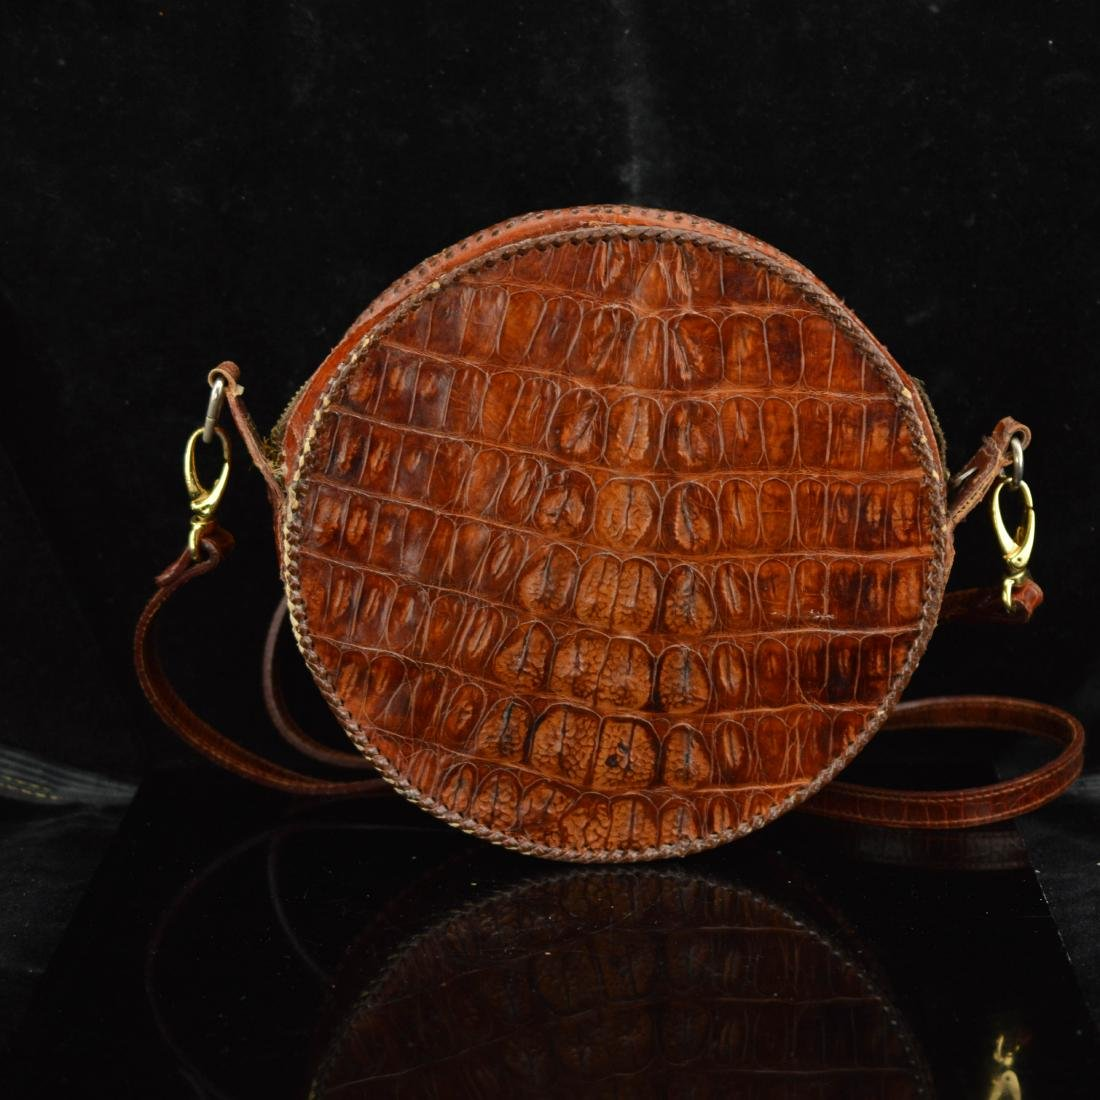 Authentic Alligator skin purse